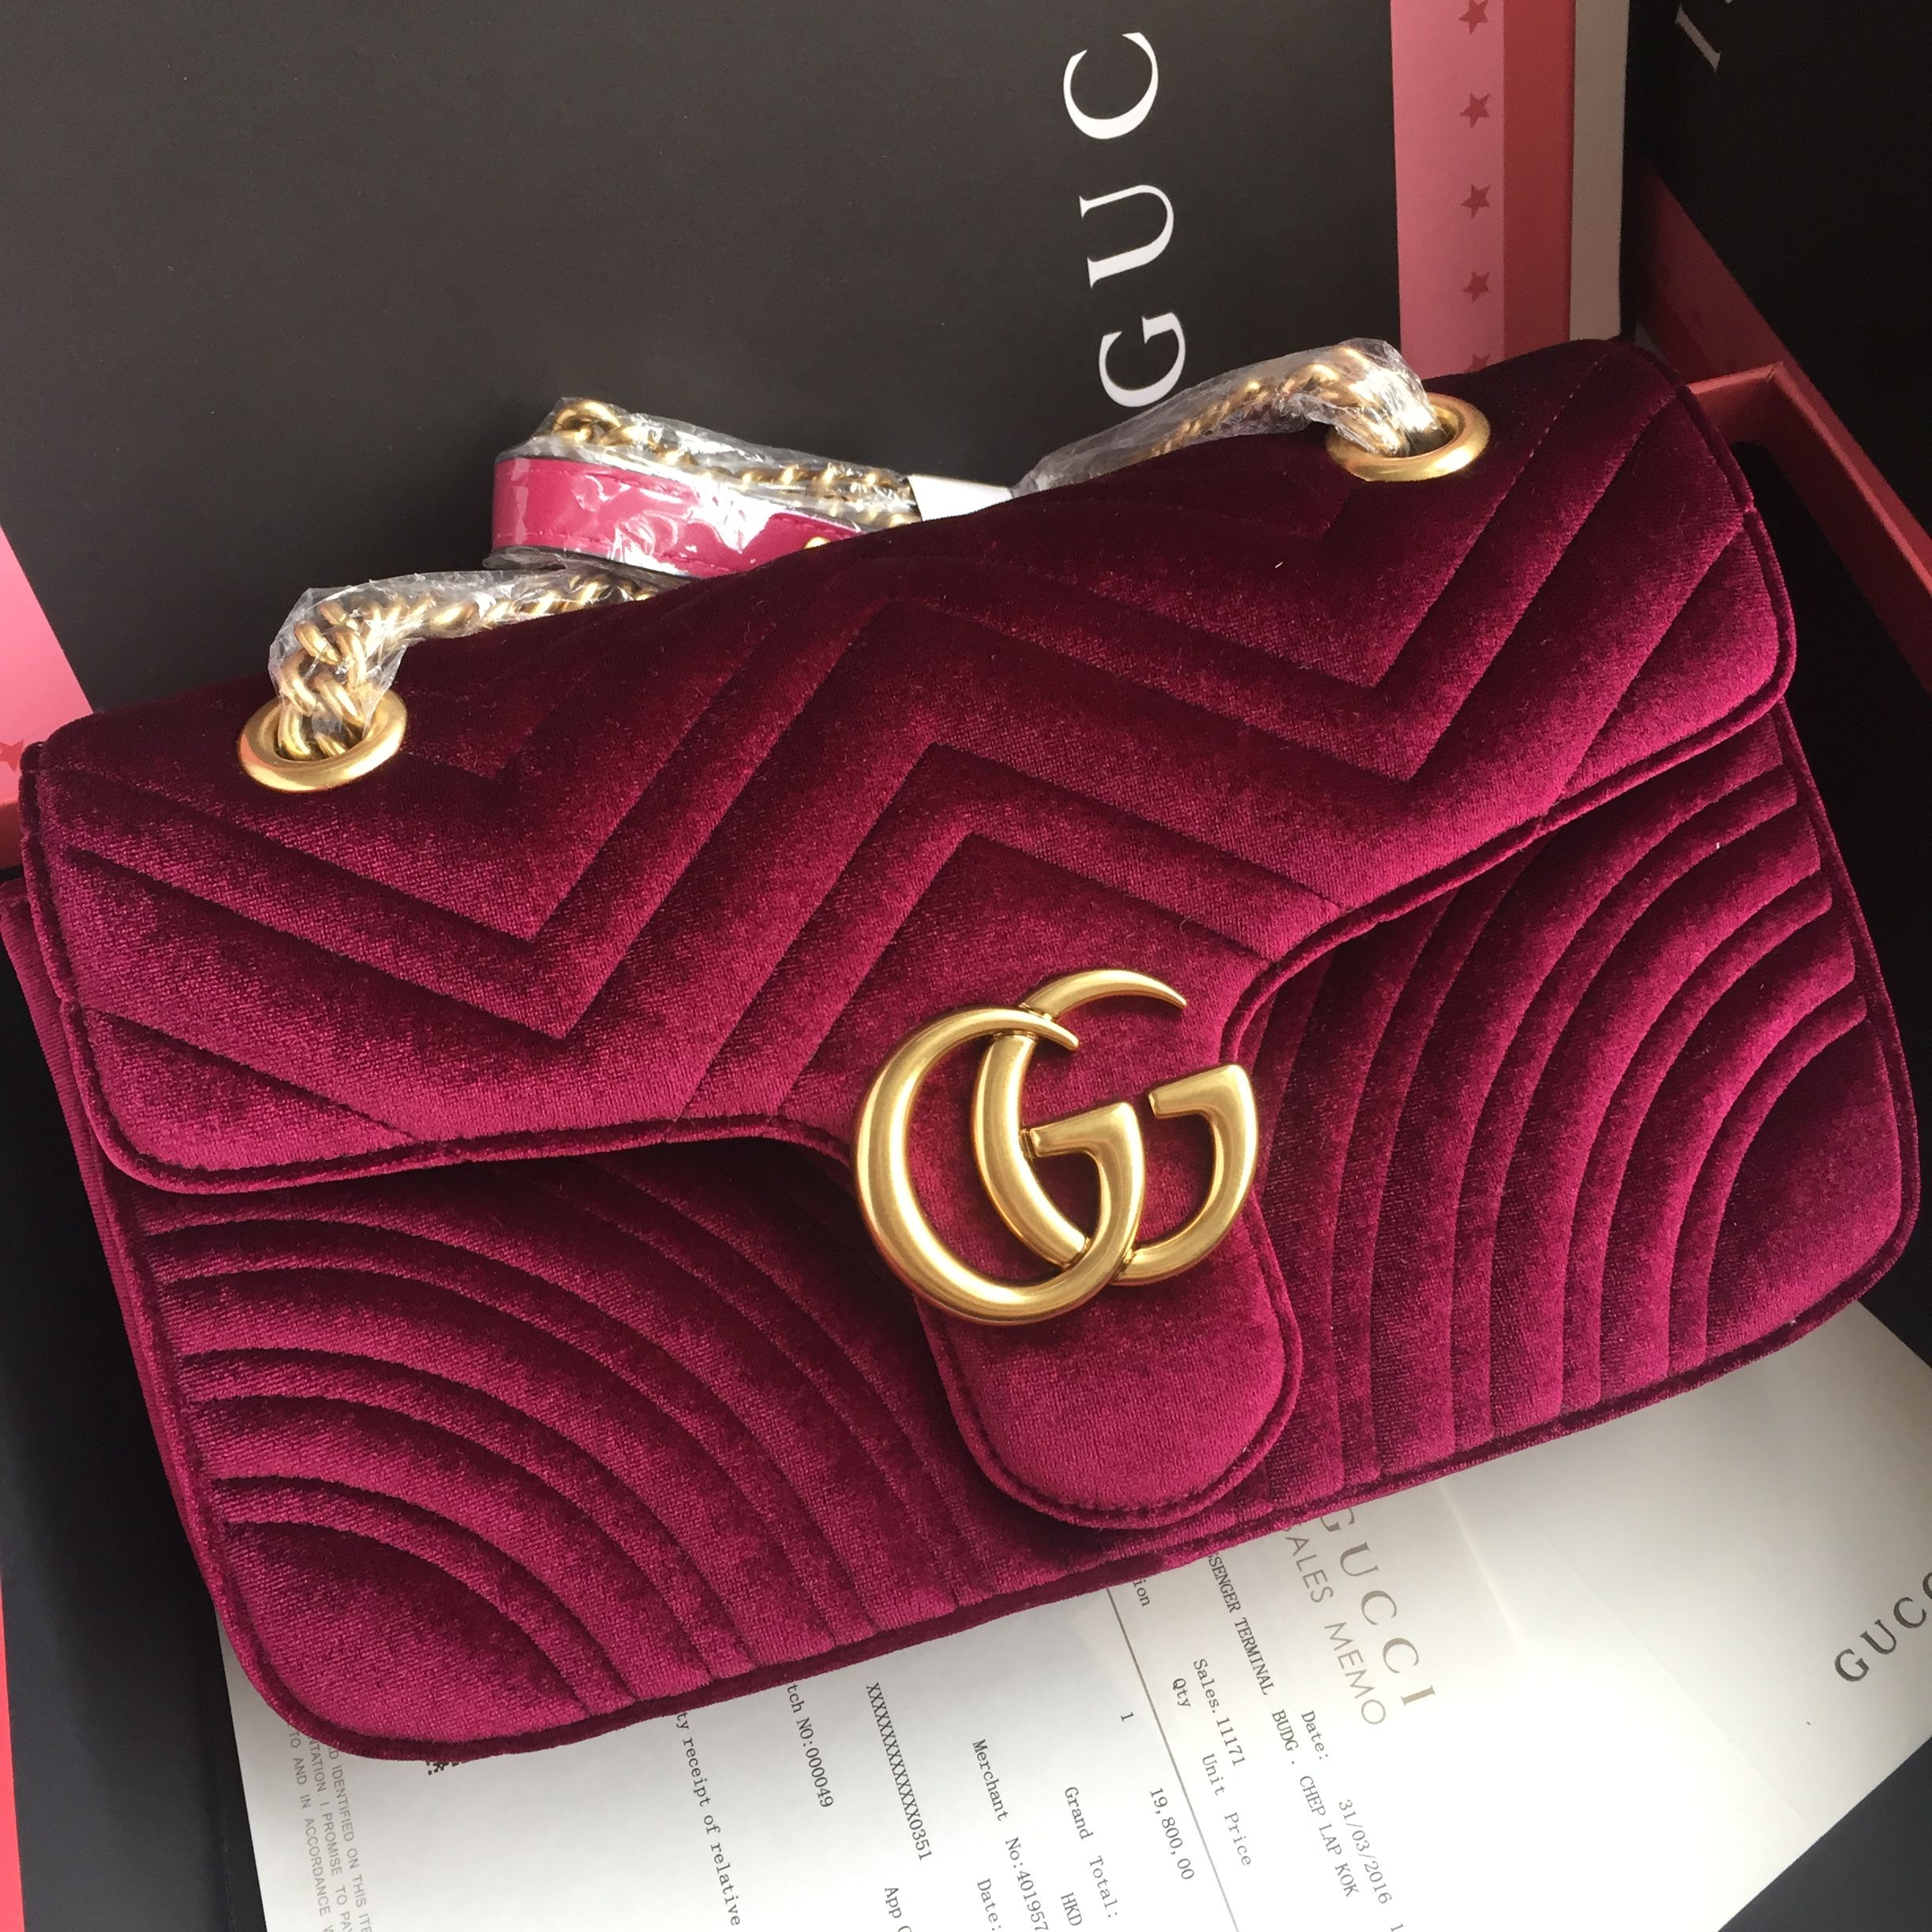 4f7fee984356 Gucci marmont velvet bag 26cm original leather wine red | Bags in ...